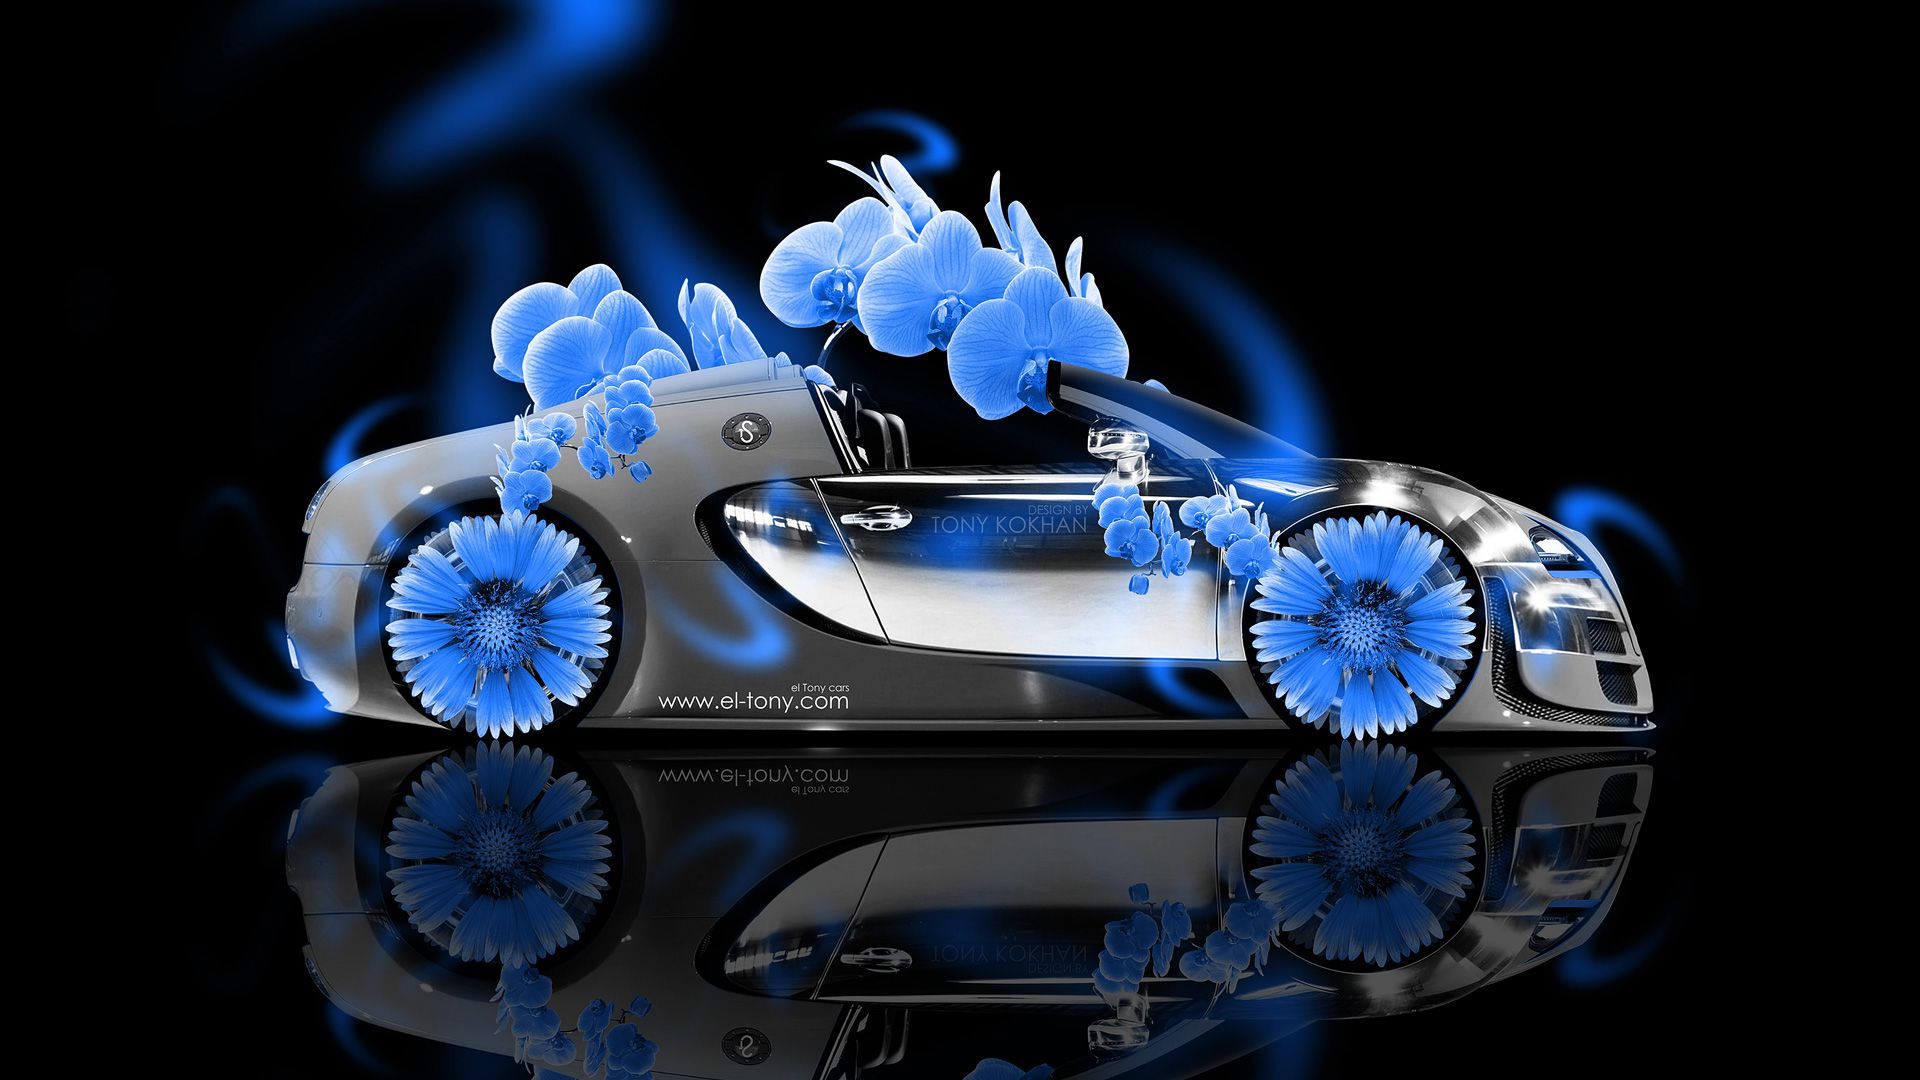 Neon Blue Flowers | Bugatti Veyron Roadster Side Fantasy Flowers